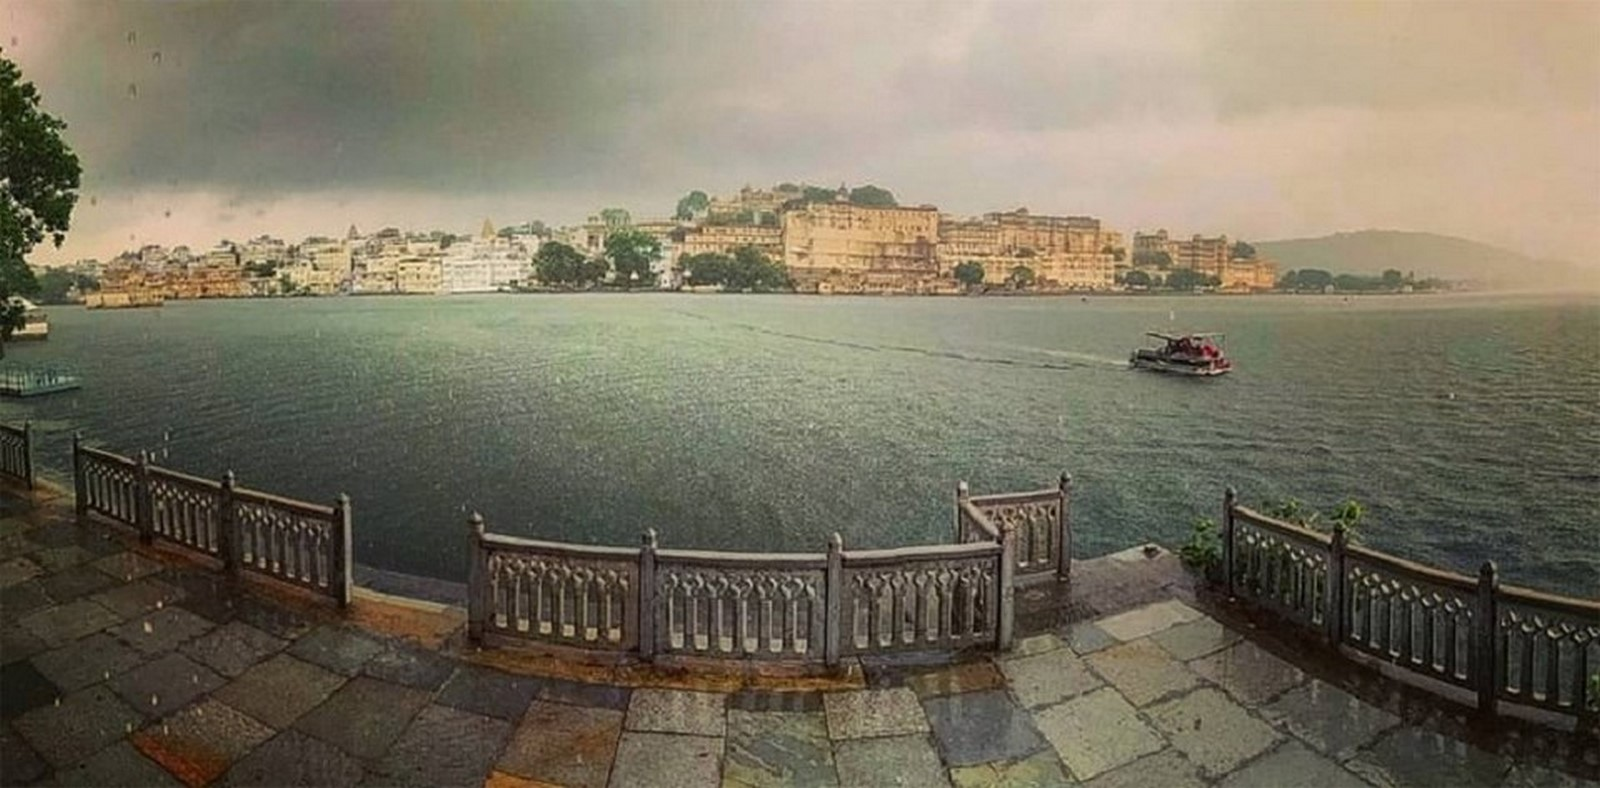 Architecture of Indian Cities Udaipur - City of lakes - Sheet12